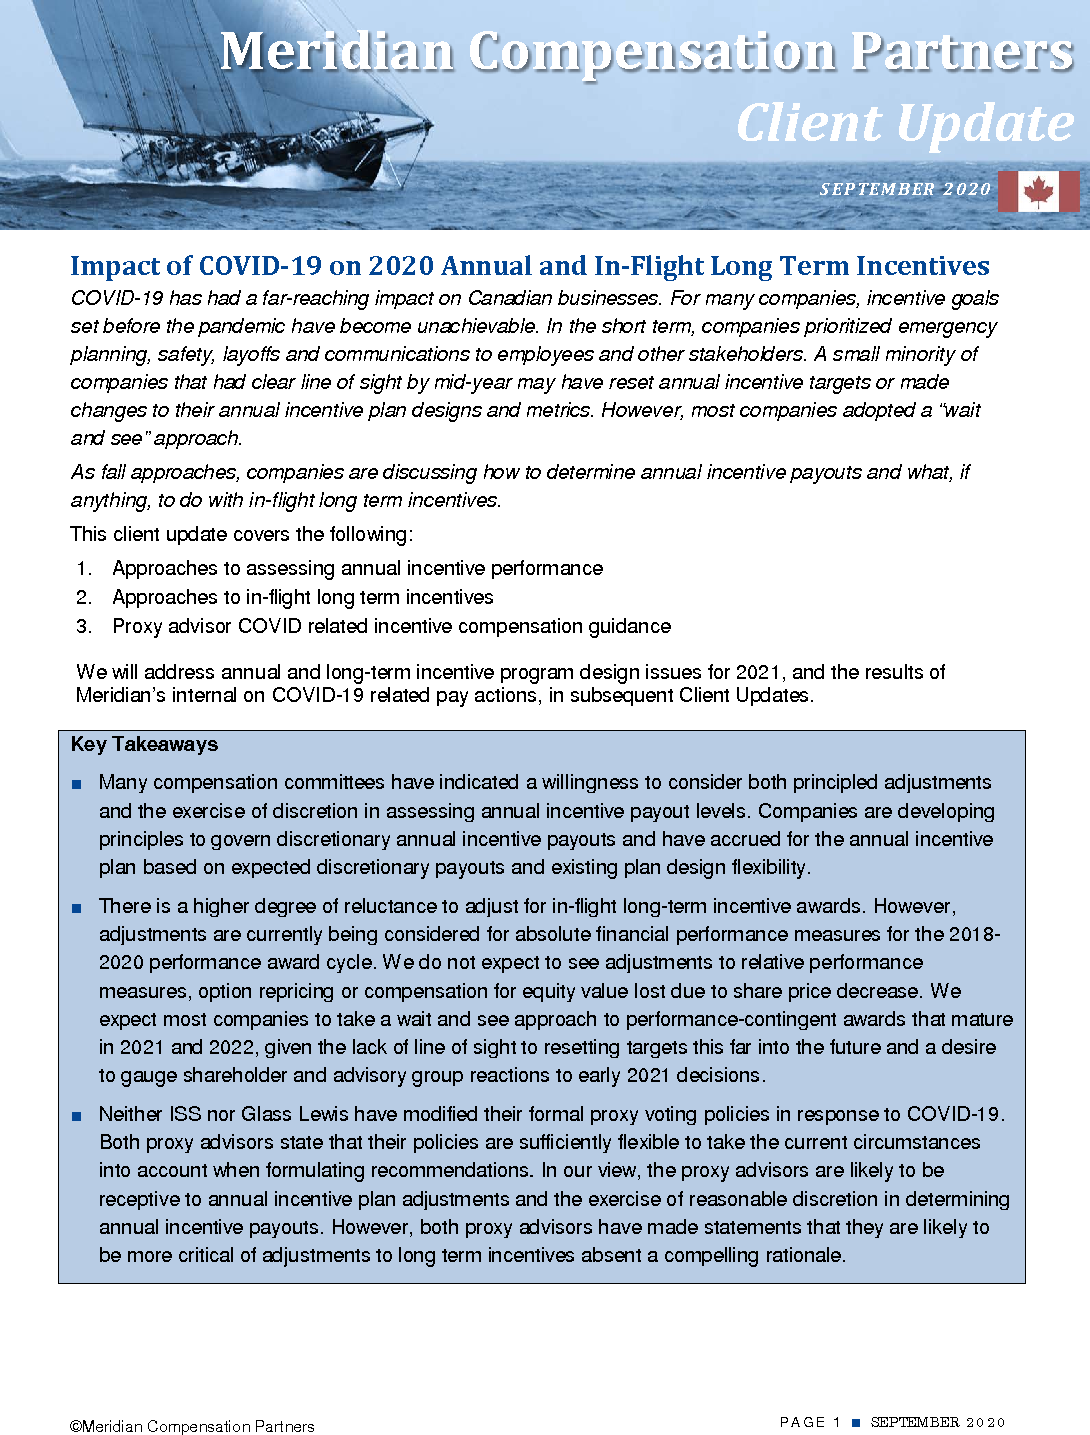 Impact of COVID-19 on 2020 Annual and In-Flight Long Term Incentives (PDF)